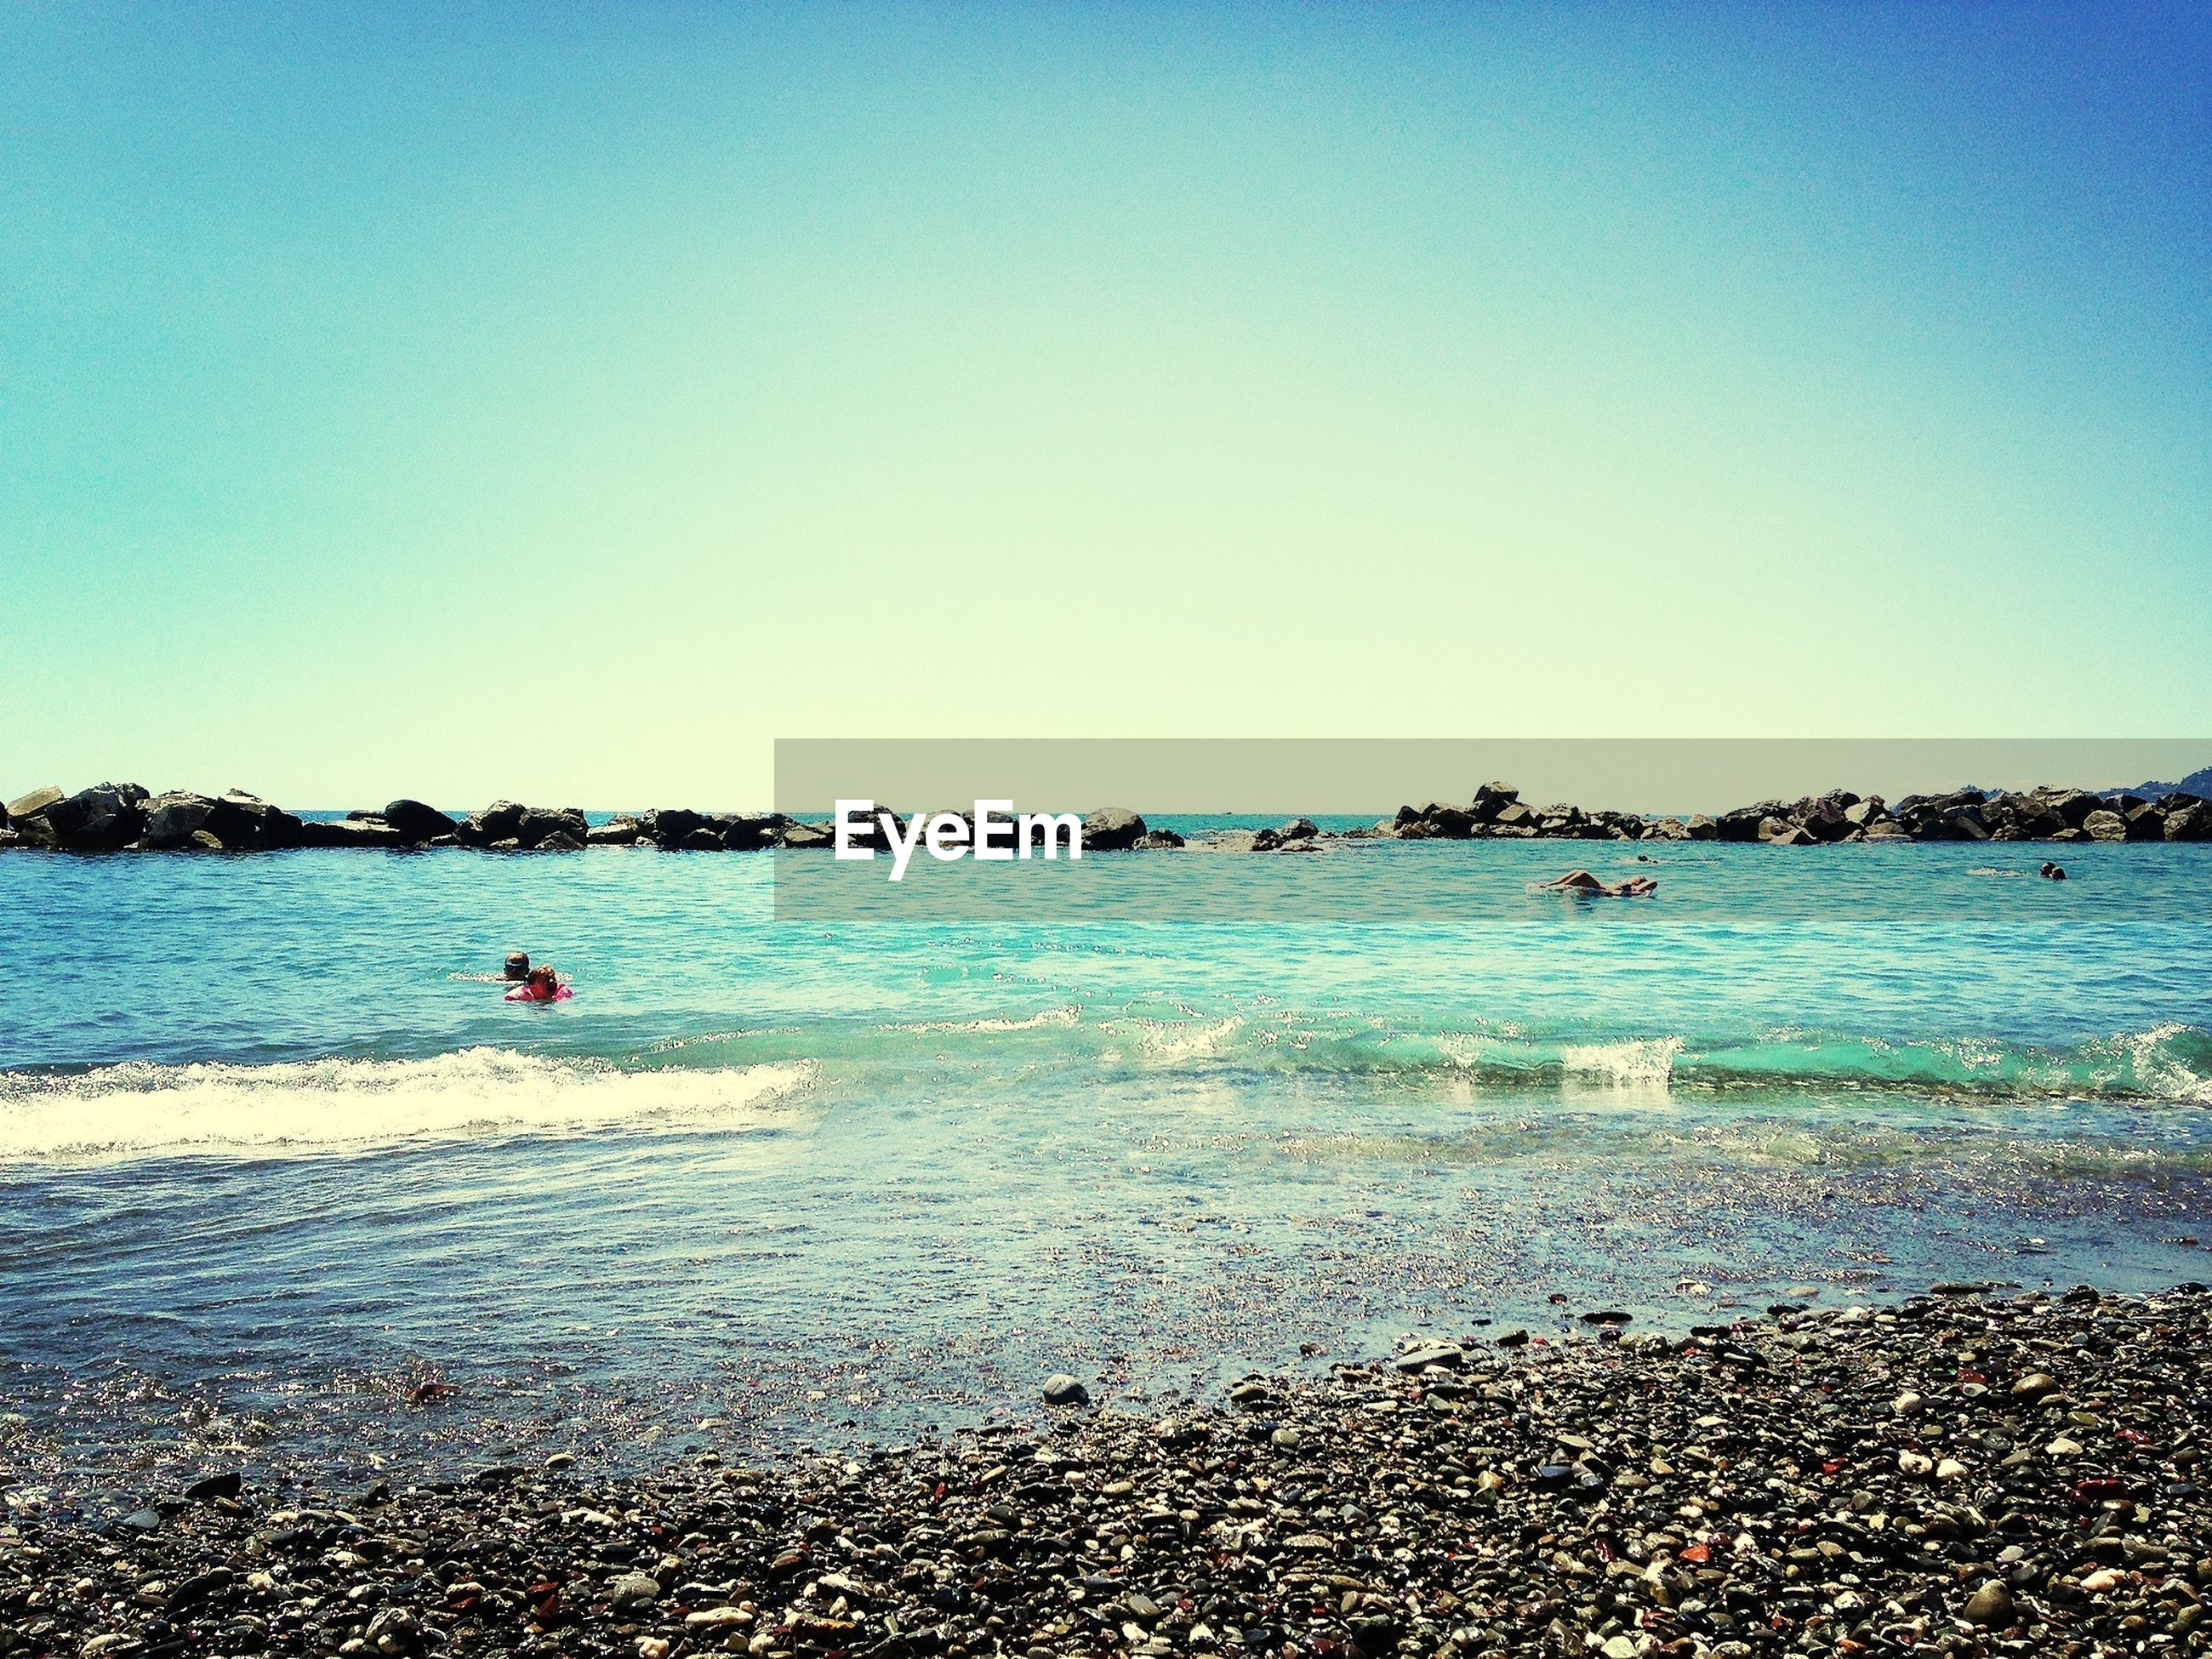 beach, water, sea, clear sky, shore, copy space, sand, blue, scenics, tranquil scene, tranquility, beauty in nature, vacations, nature, horizon over water, coastline, leisure activity, incidental people, large group of people